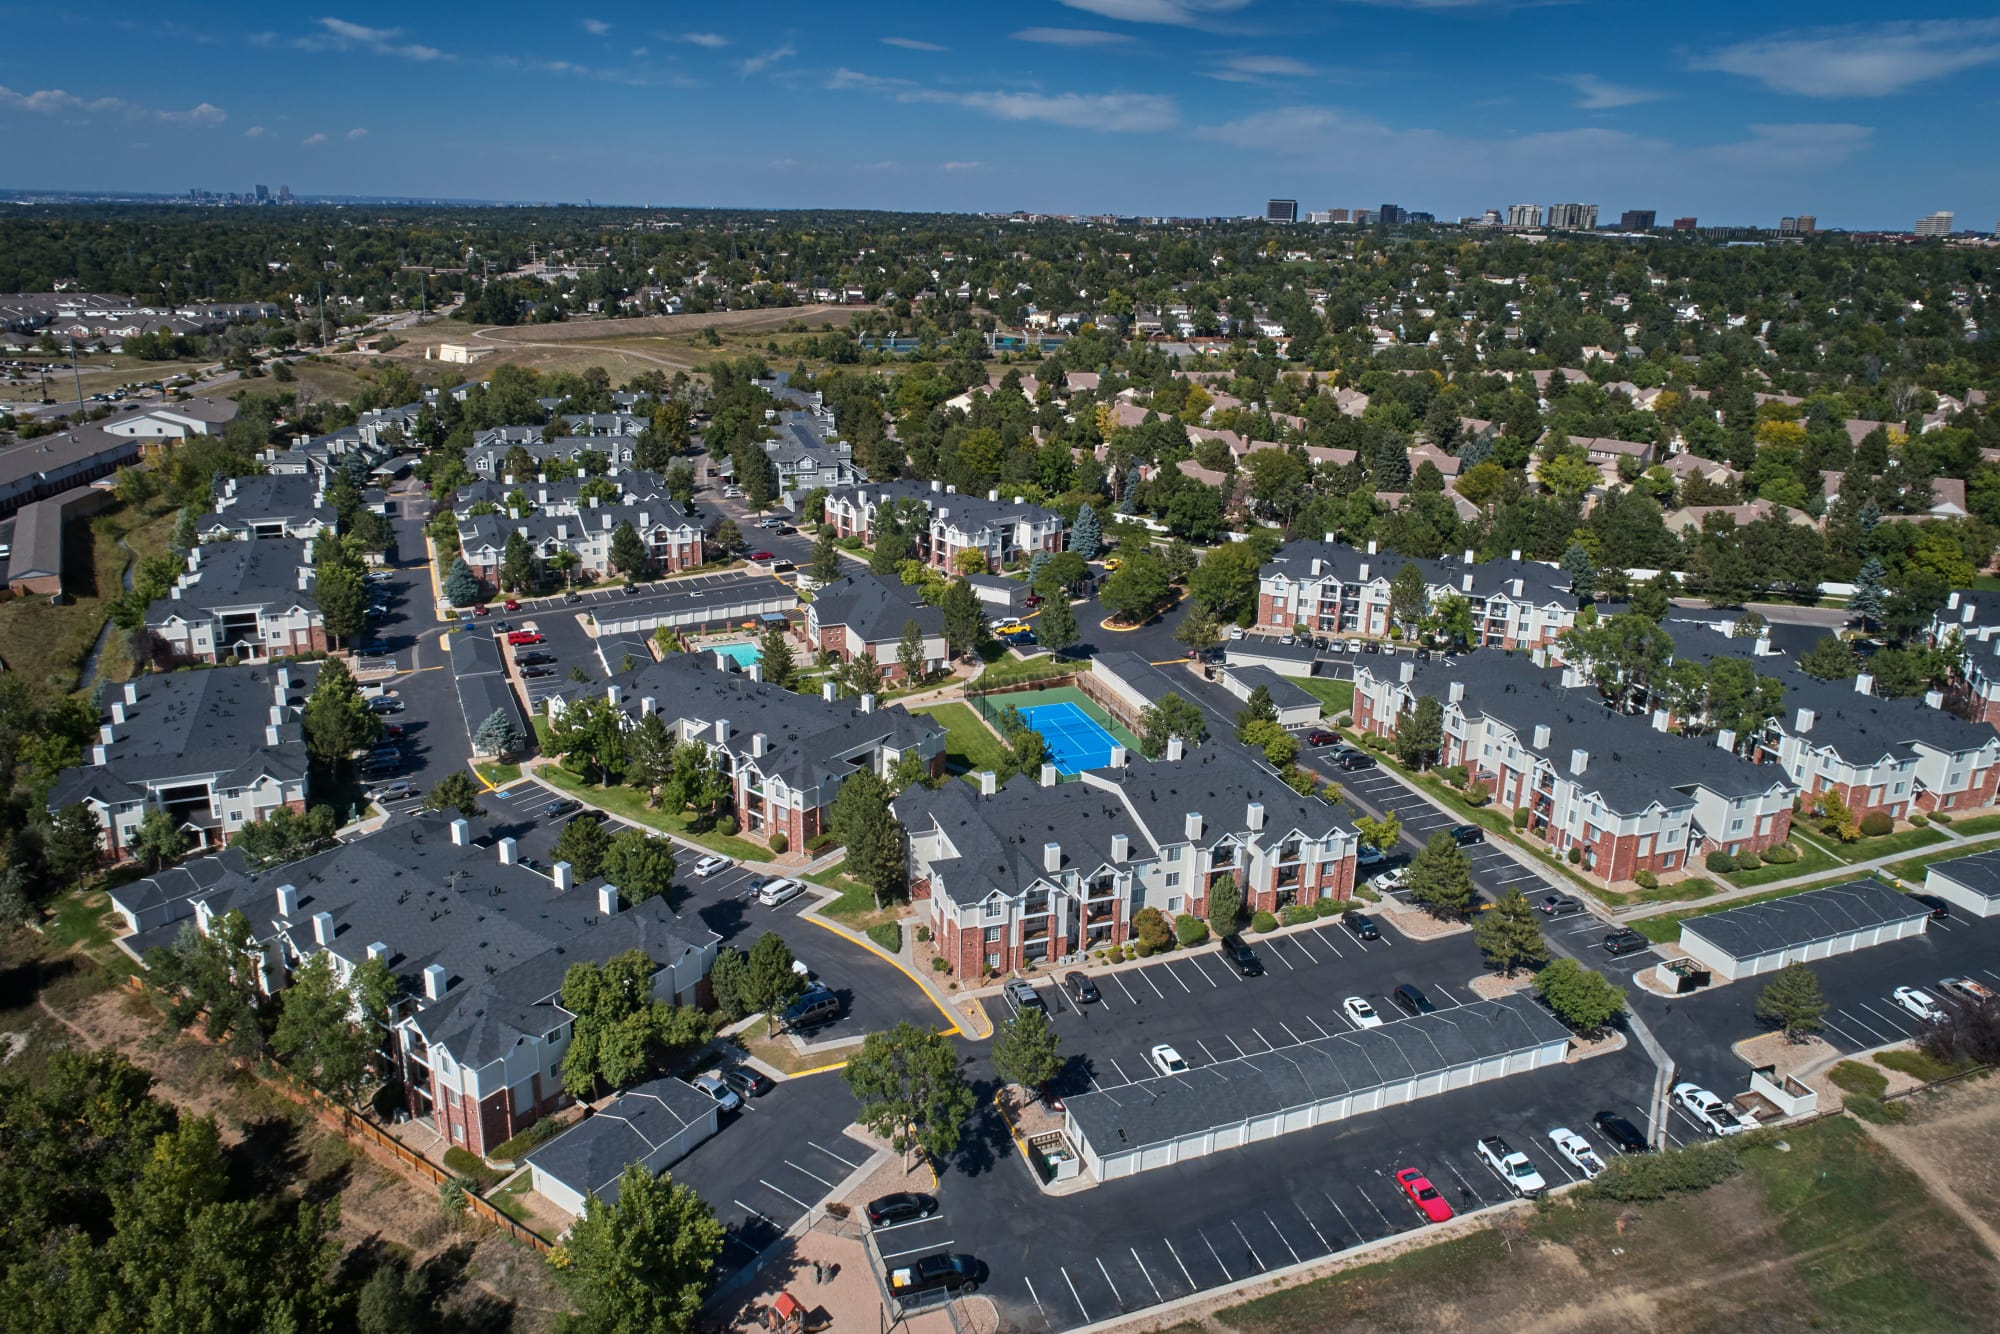 Aerial view of the property and surrounding area at Villas at Homestead Apartments in Englewood, Colorado